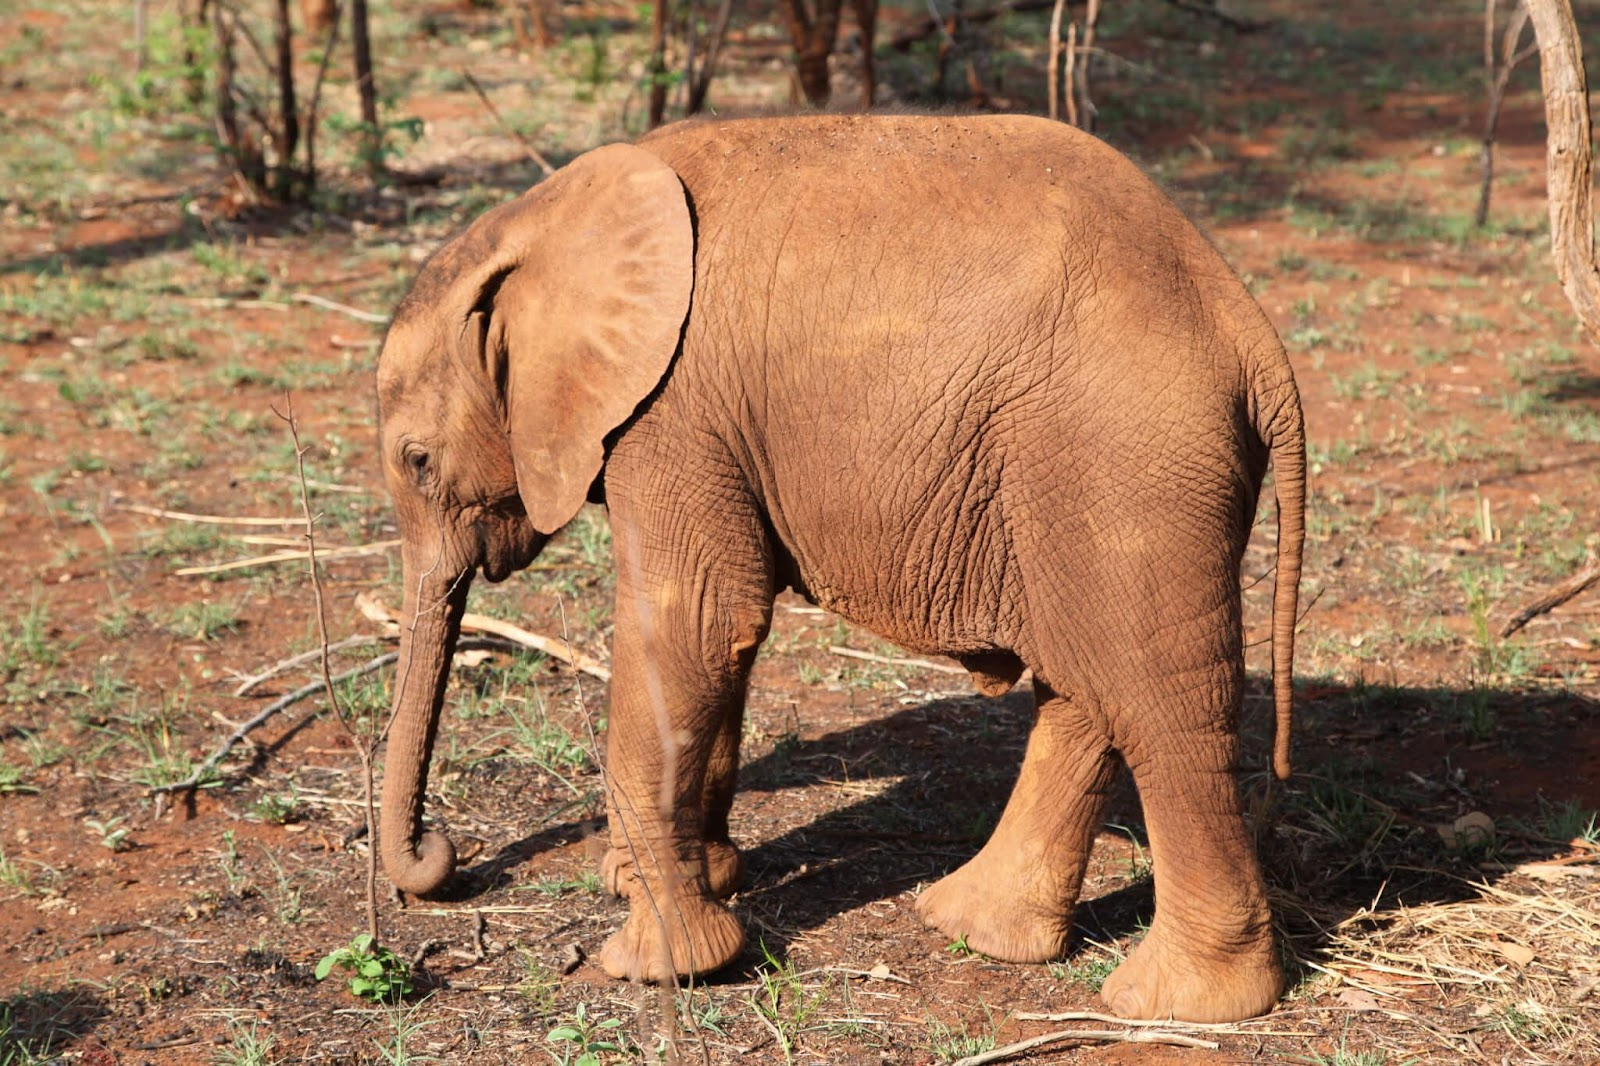 How can we help save African elephants?